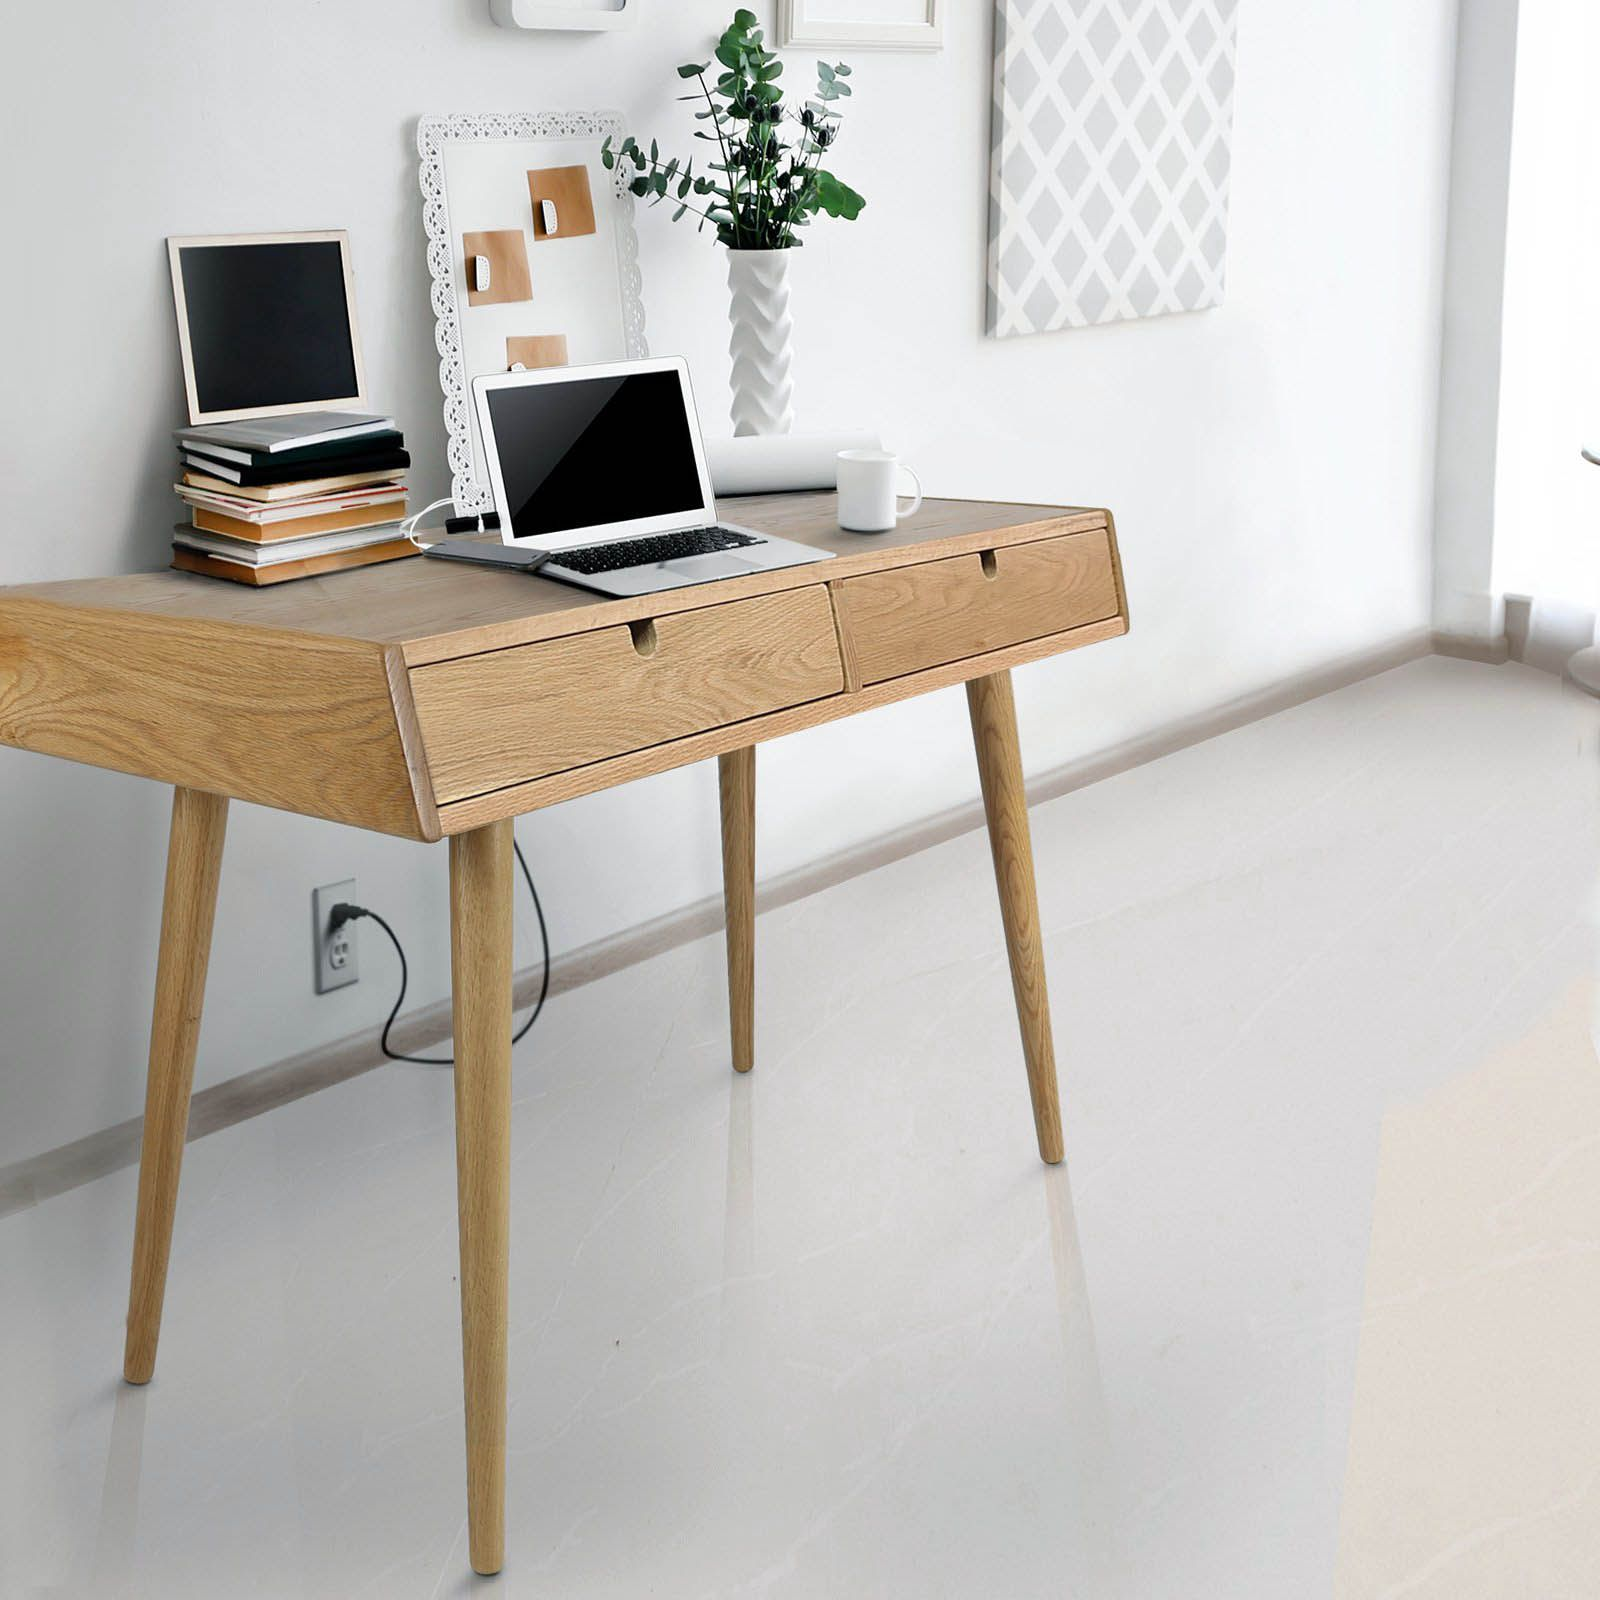 Cozy Mid Century Modern Standing Desk For Your Home Solid Wood